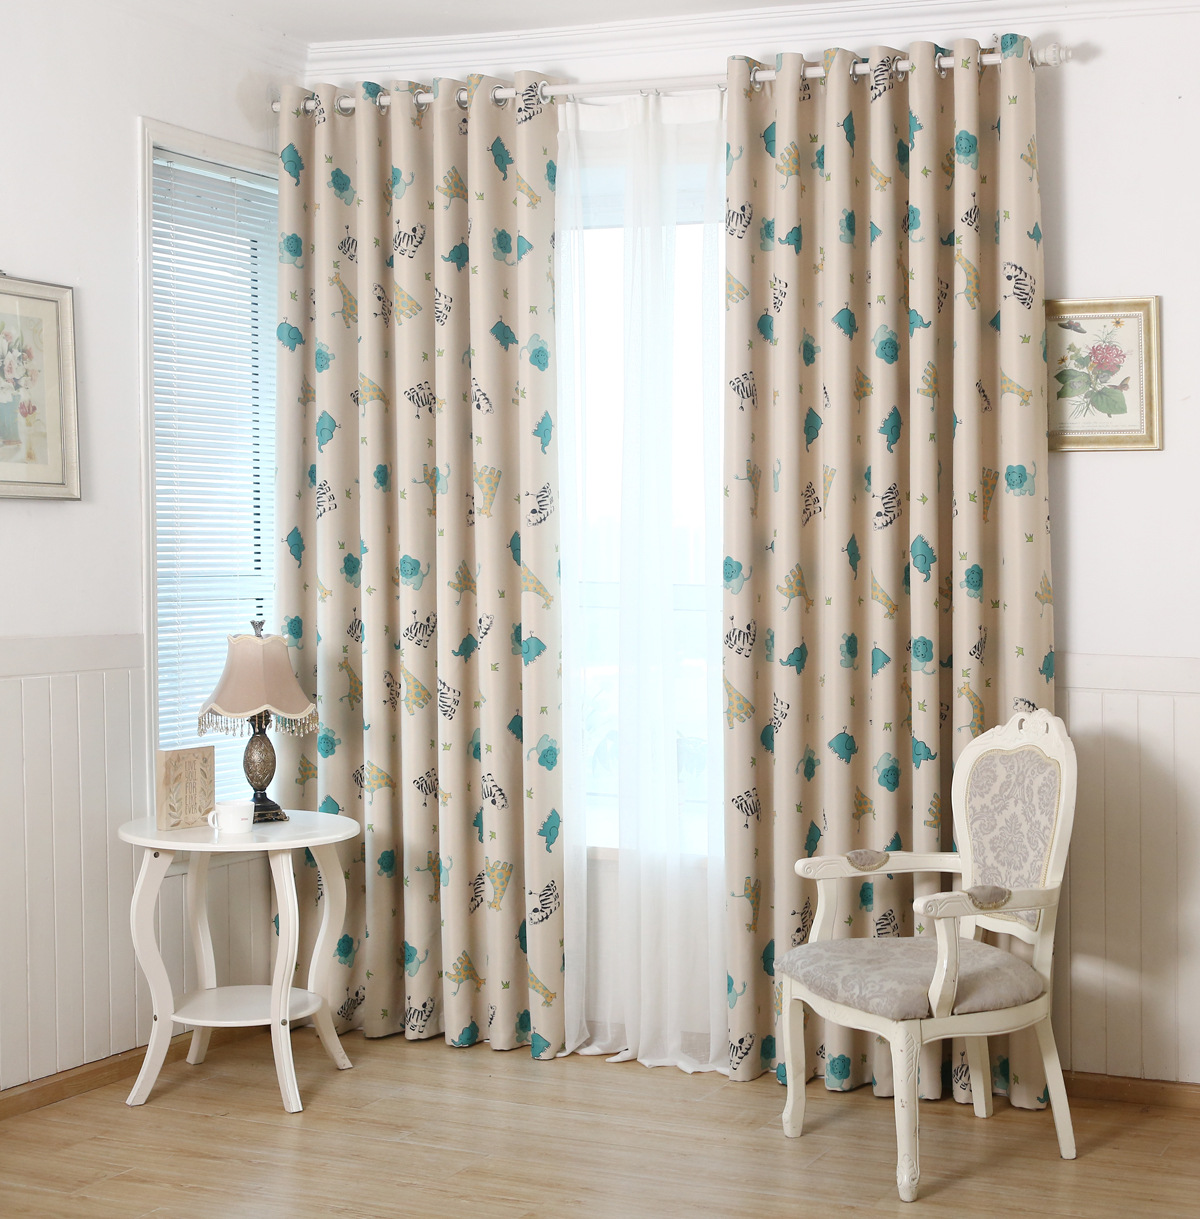 Curtains for bedroom 2016 - Animal Paradise Korean Curtain Bedroom Window Curtain Cloth Cute Kids Curtains For Children Room Living Room Blinds